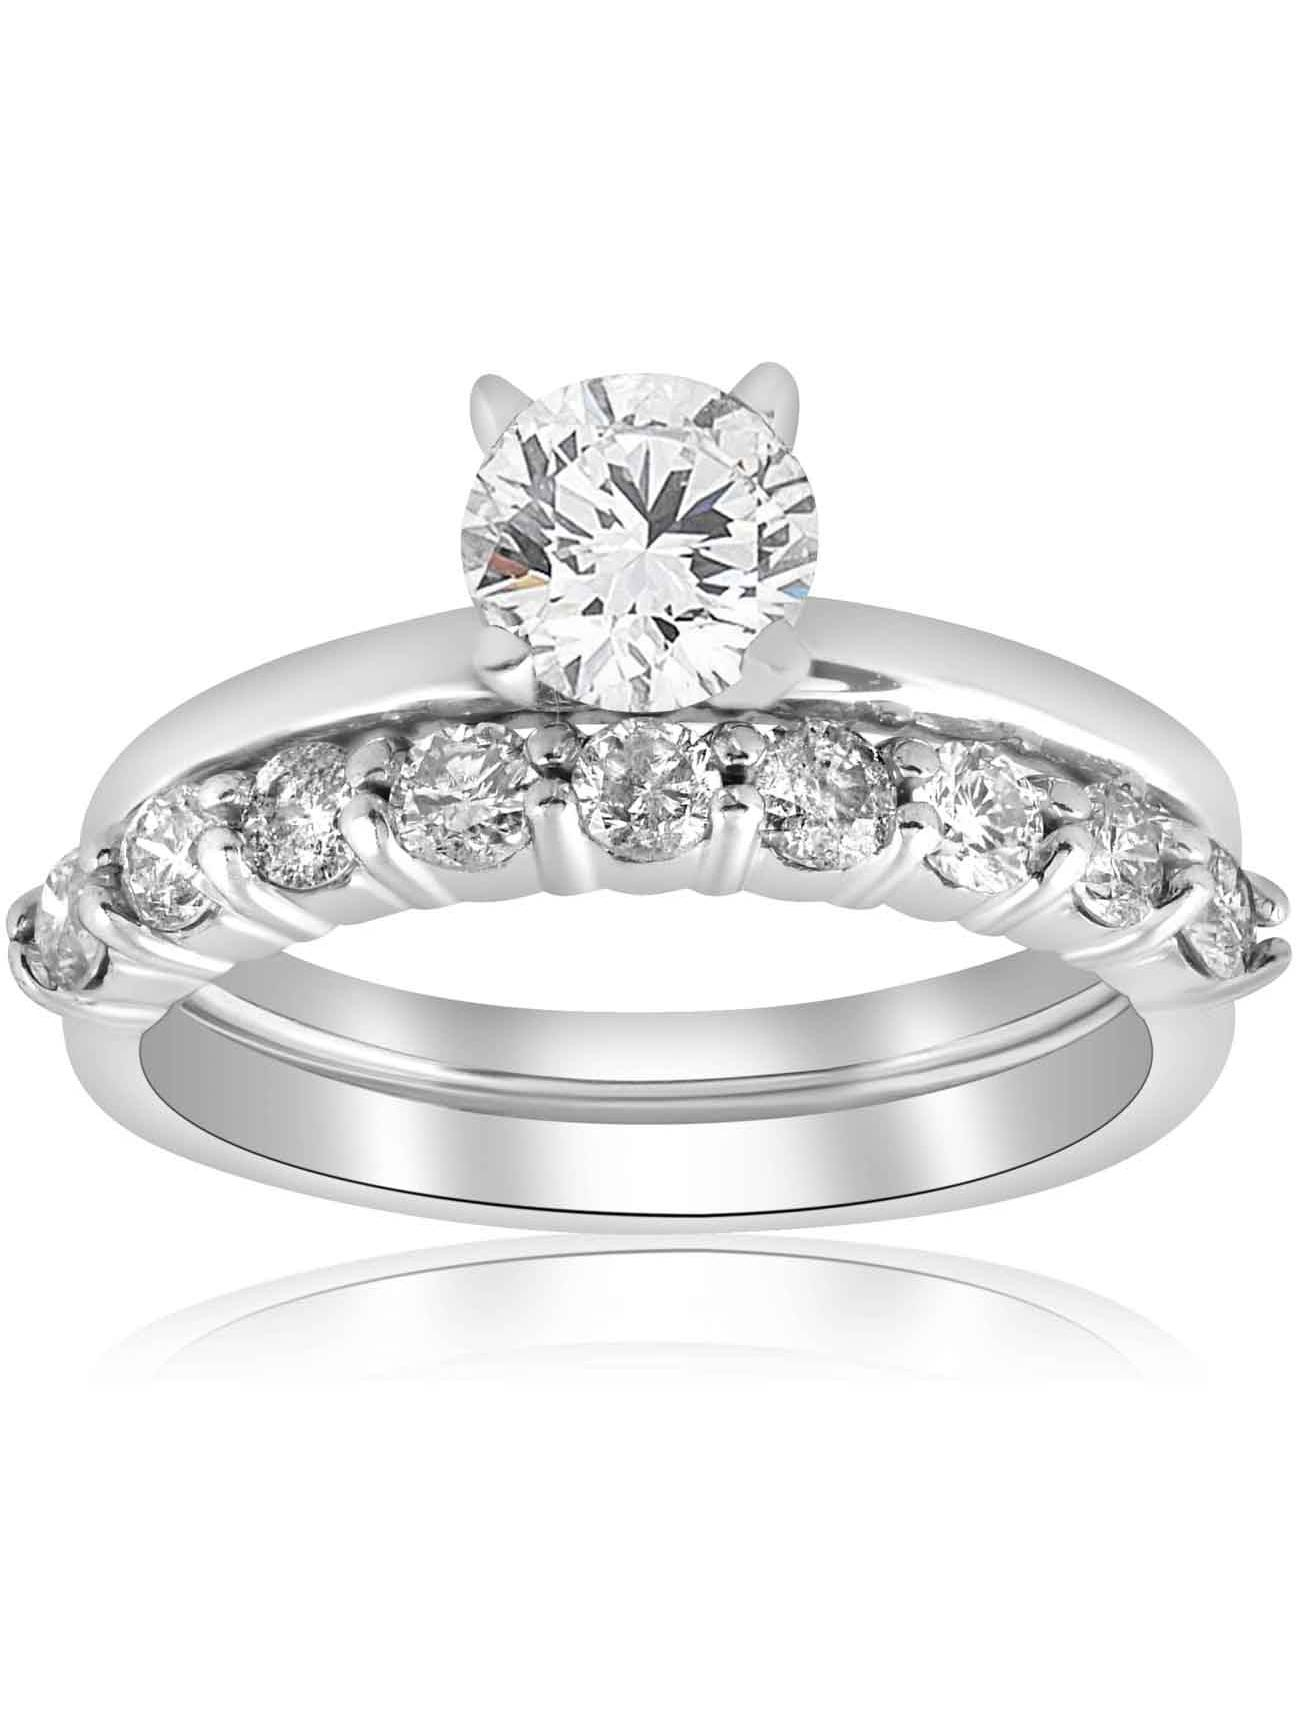 1 1/10ct Diamond Engagement Wedding Ring Solitaire Set 14k White Gold